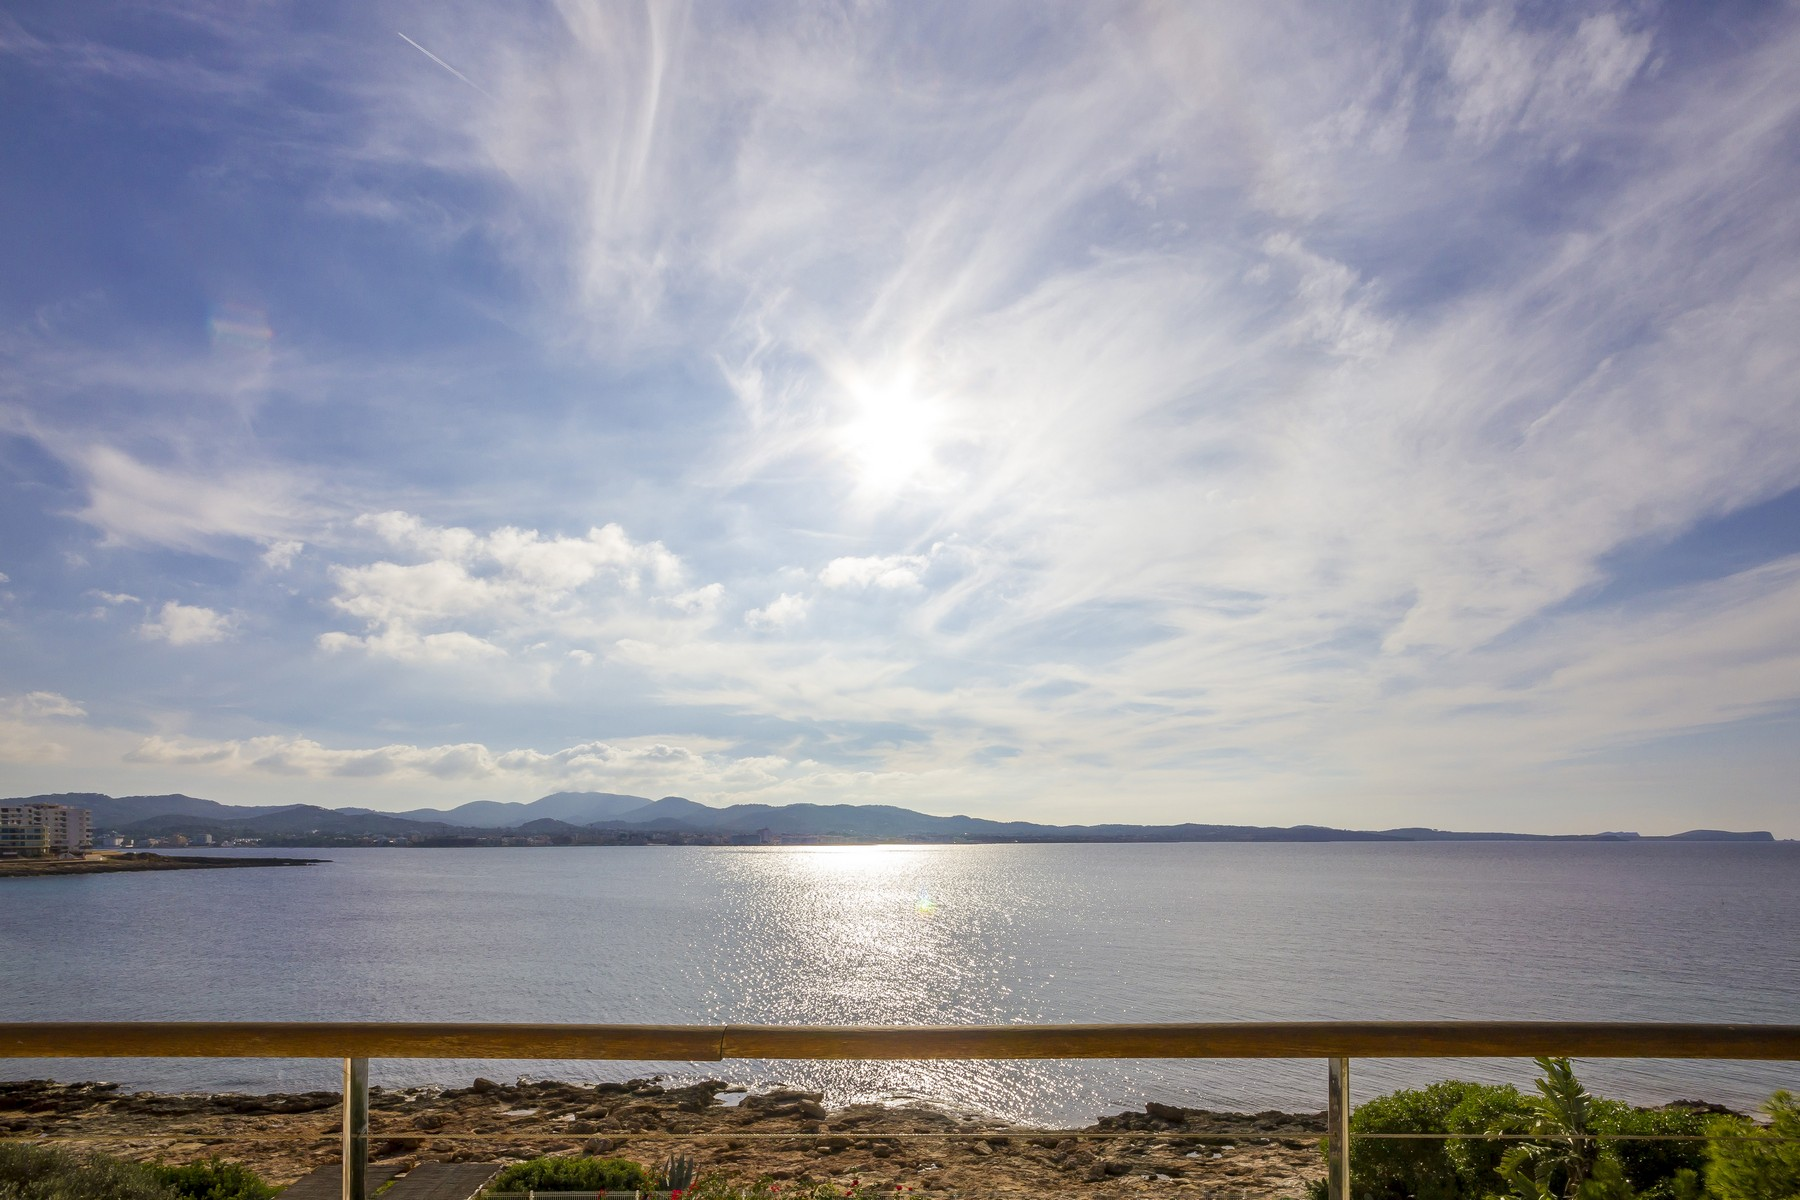 Appartement pour l Vente à Frontline Attic with Sunset Sea Views San Antonio Abad, Majorque, 07830 Espagne